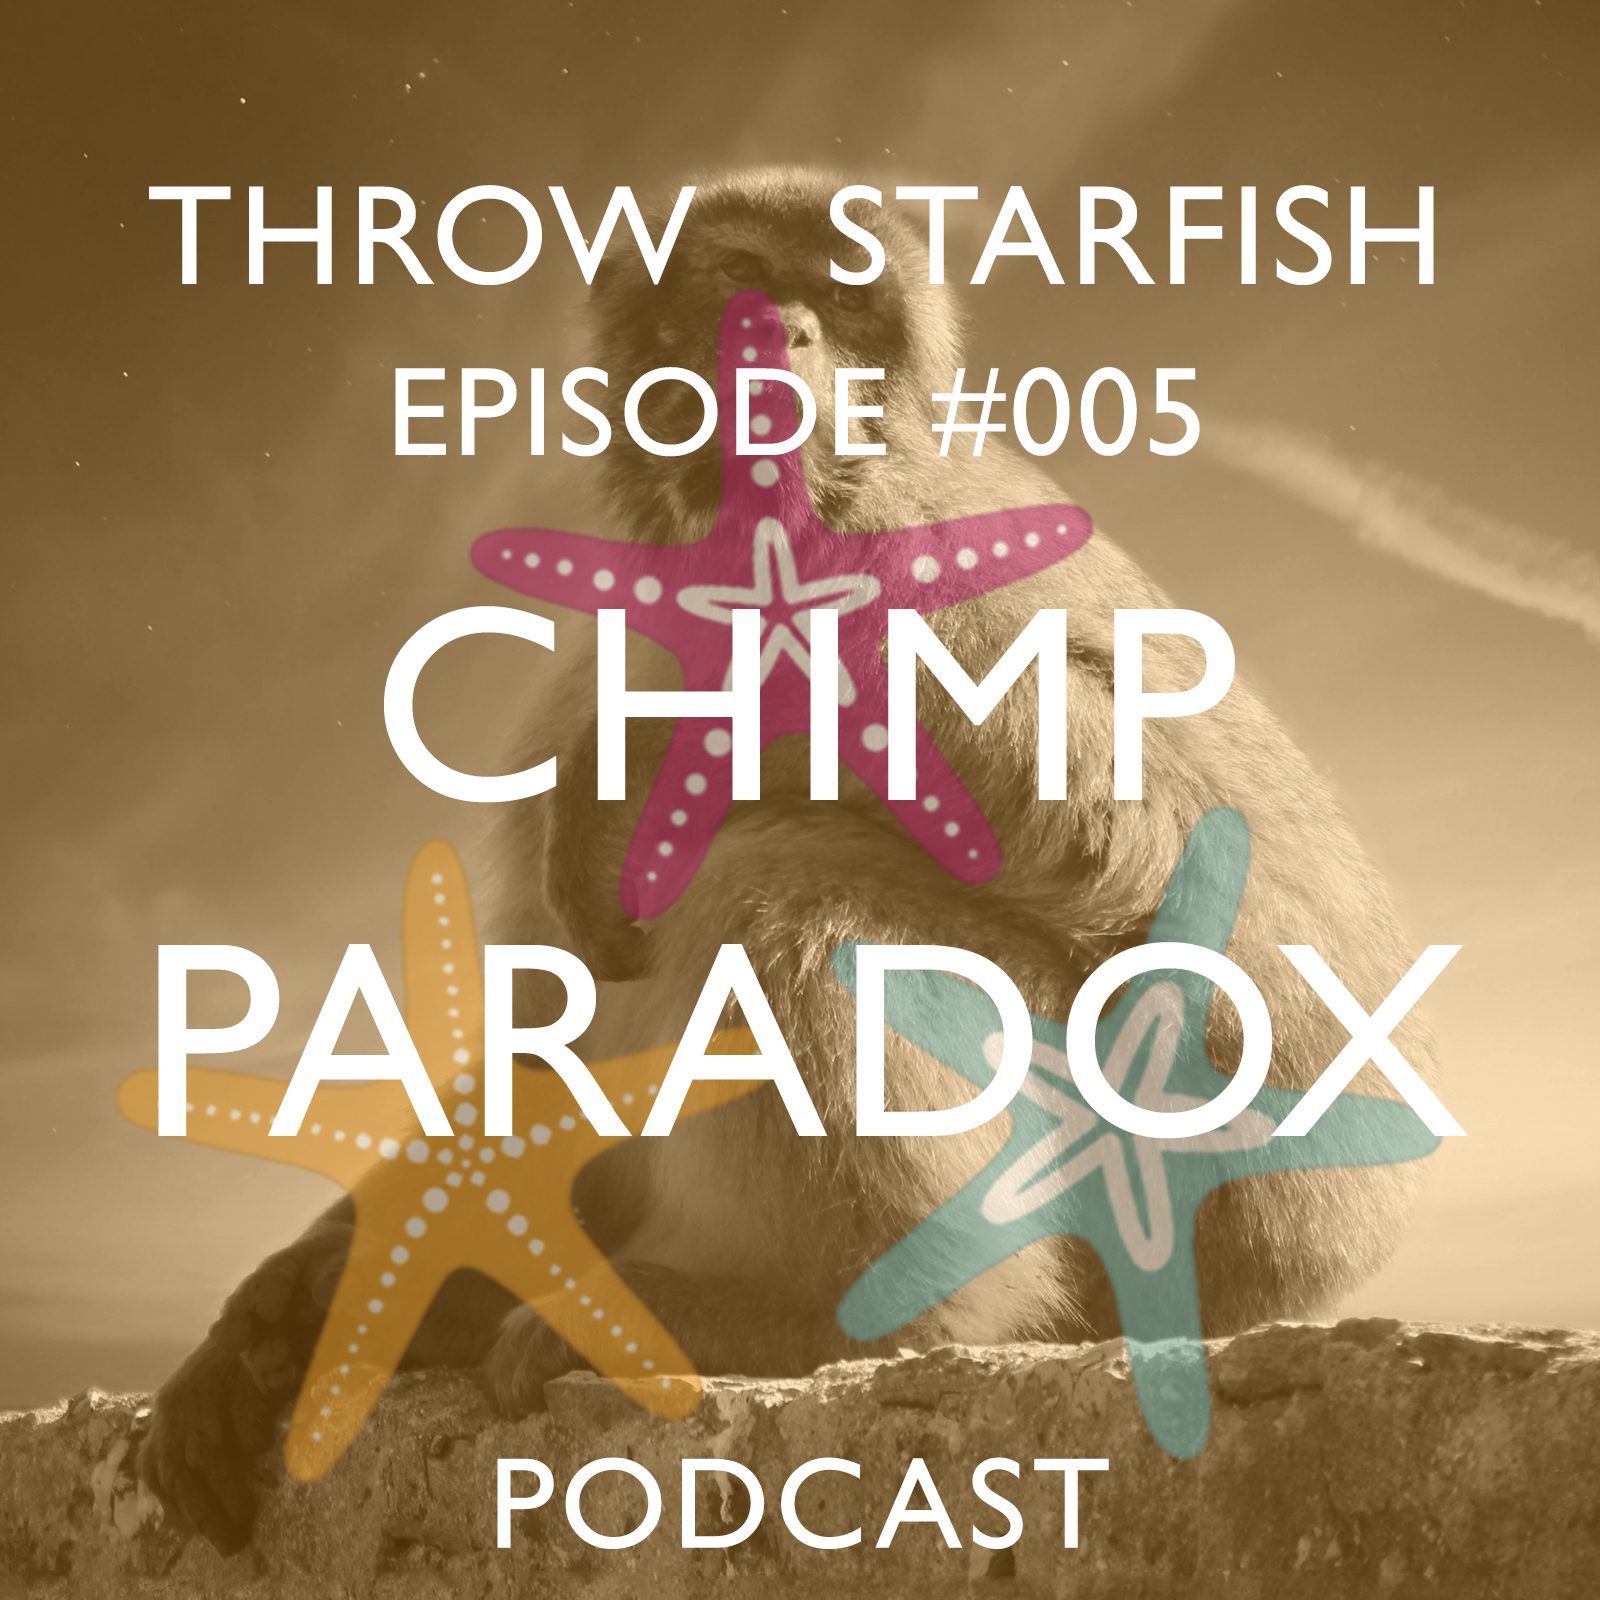 Click on the image to listen to our Chimp Paradox Podcast